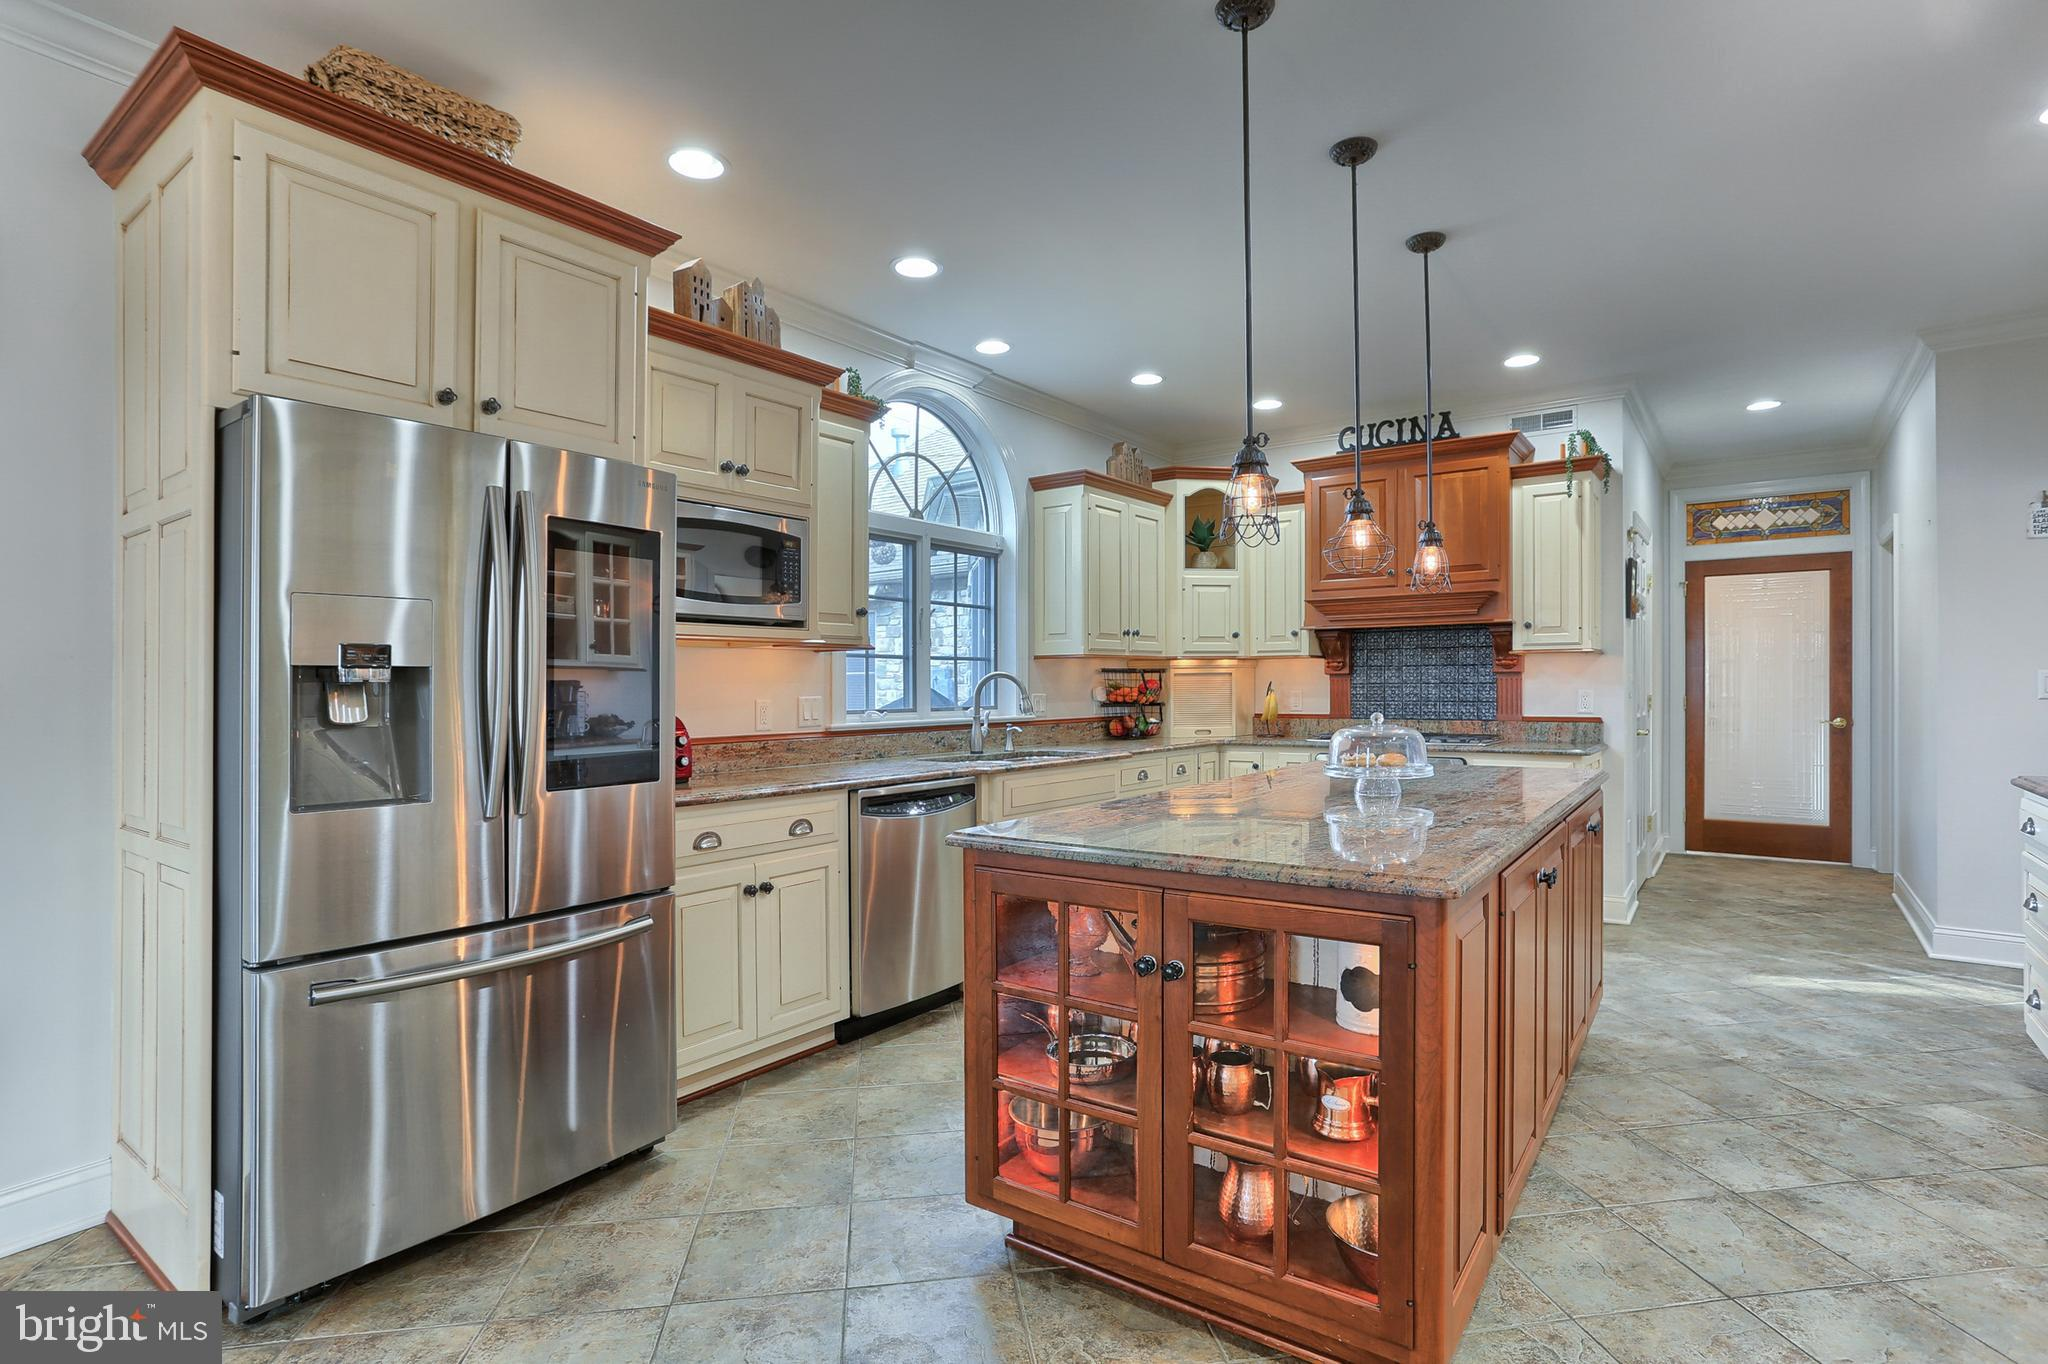 Beautiful Cabinetry provides Ample Storage